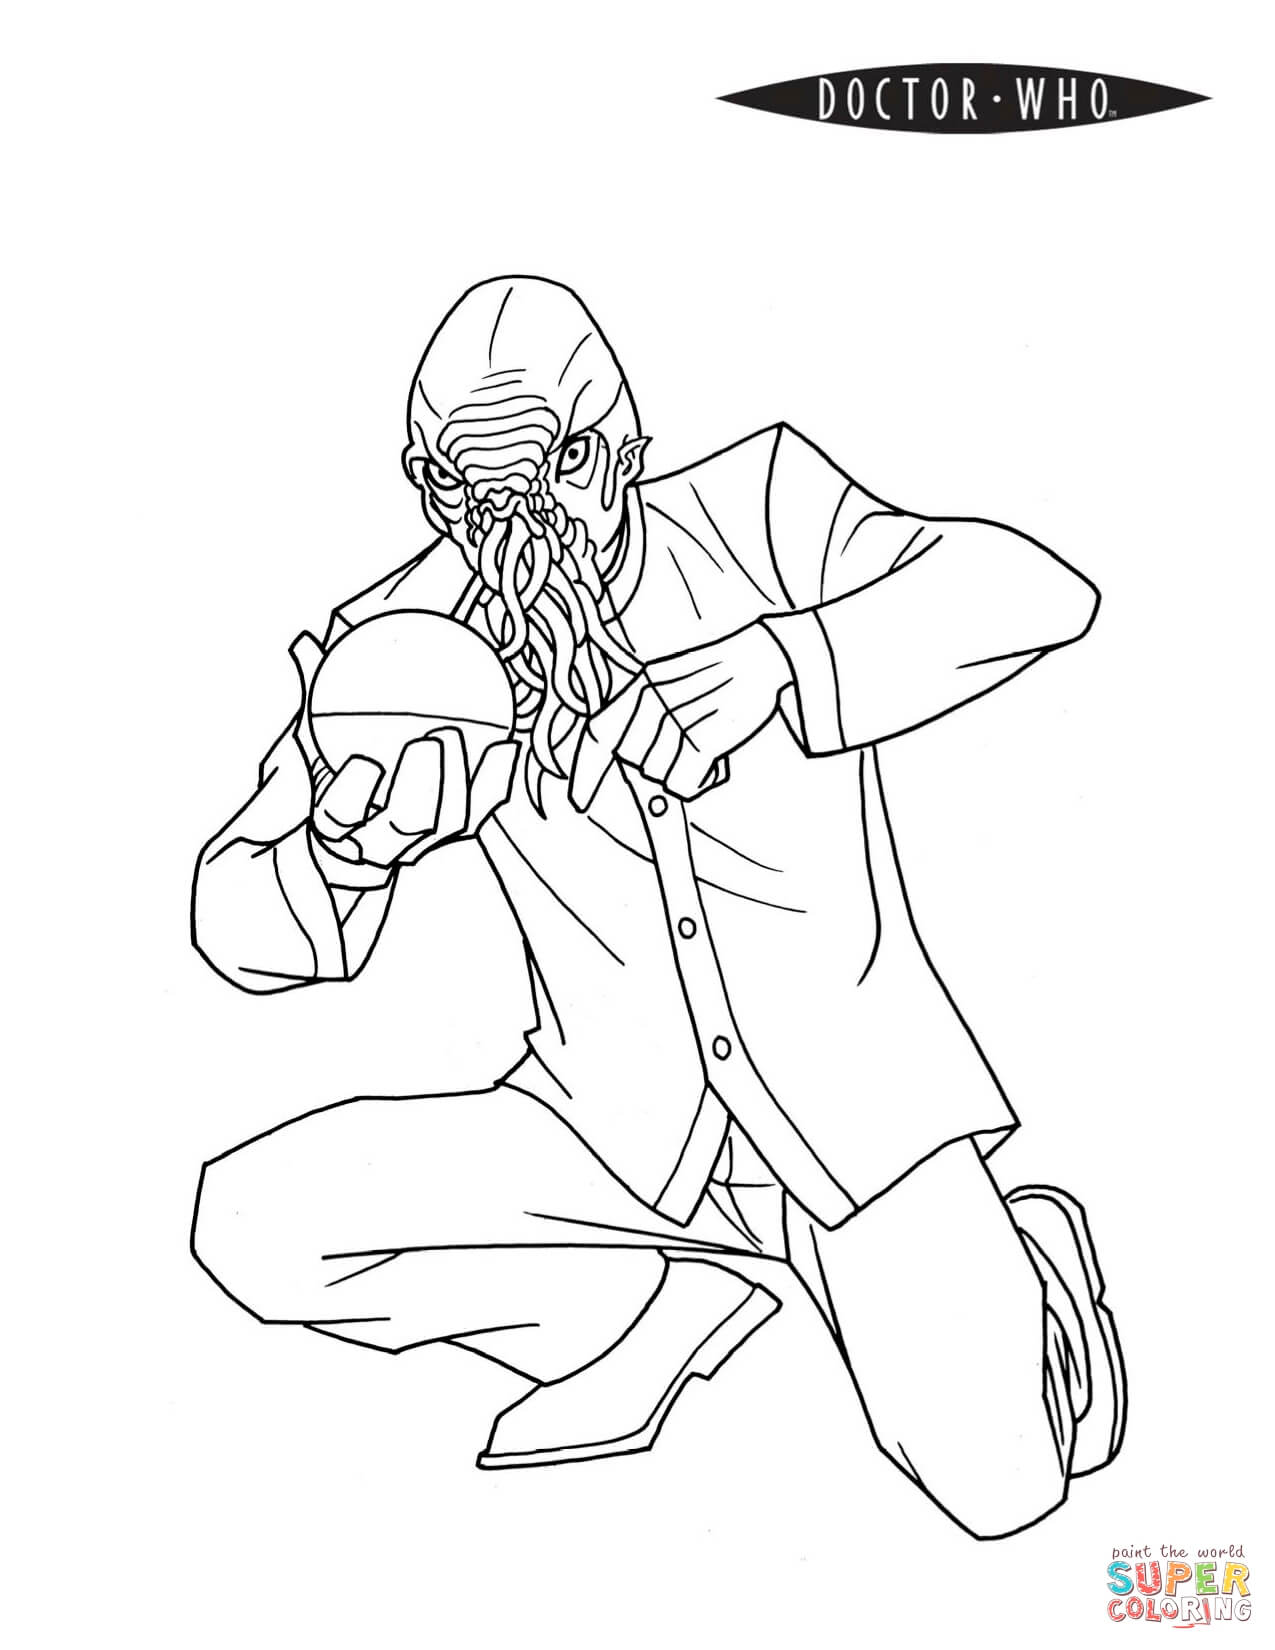 dr who coloring page - doctor who coloring page coloring home